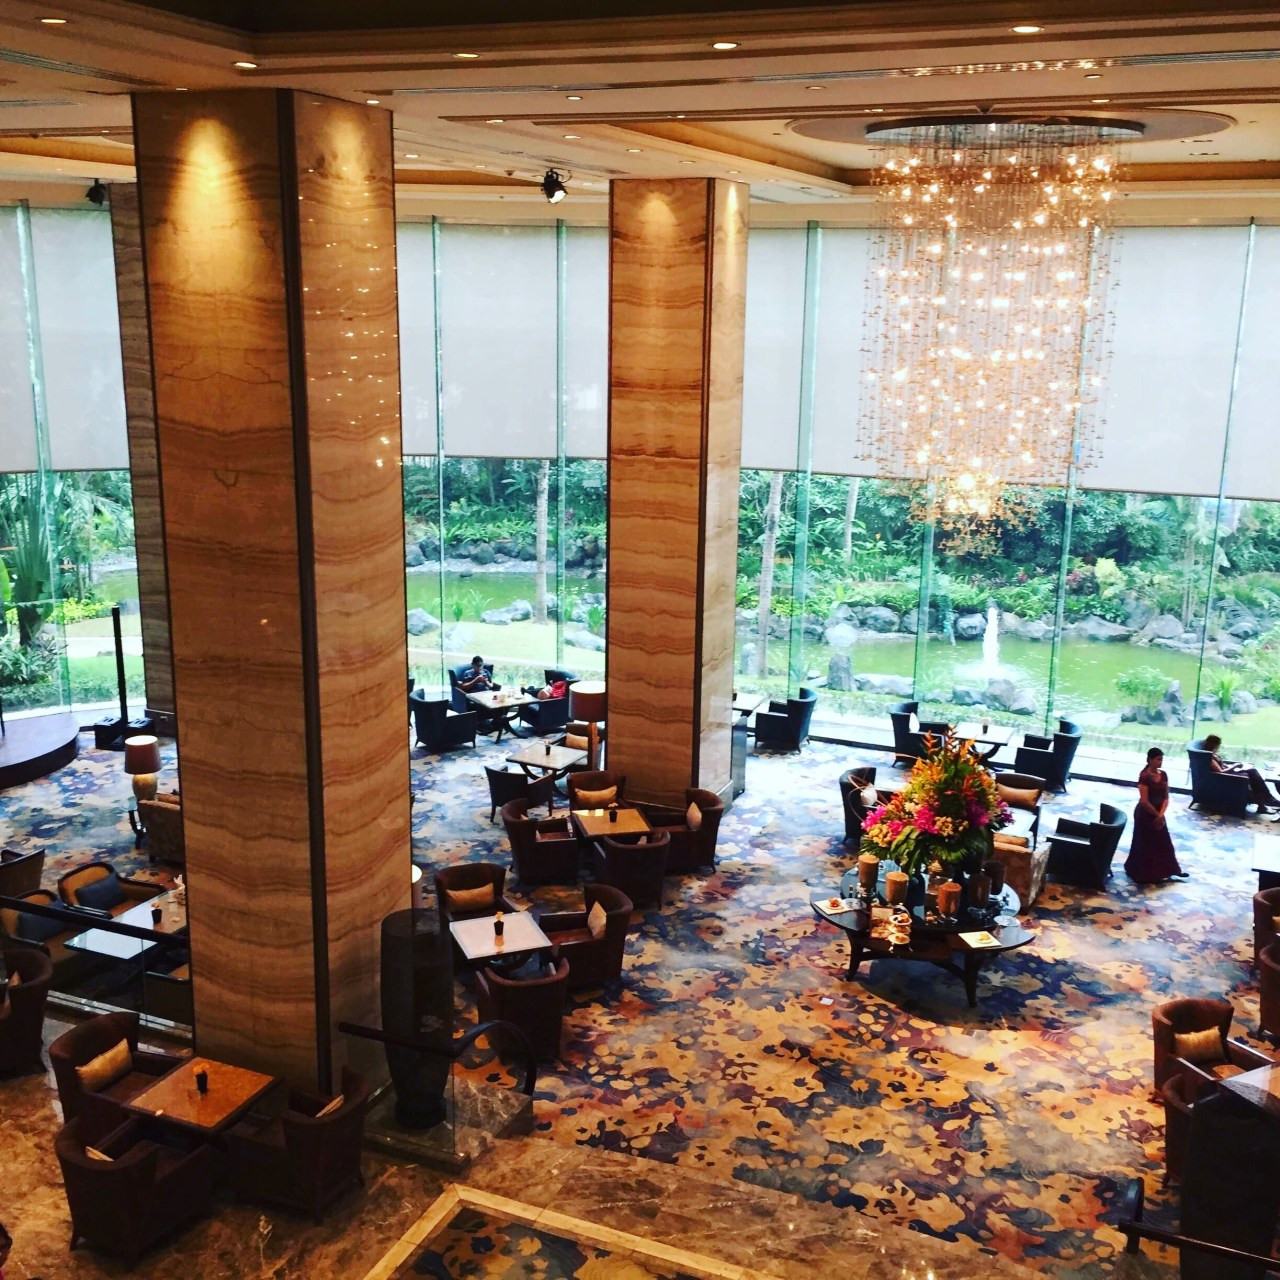 The Lobby Lounge at the Edsa Shangri-la Hotel